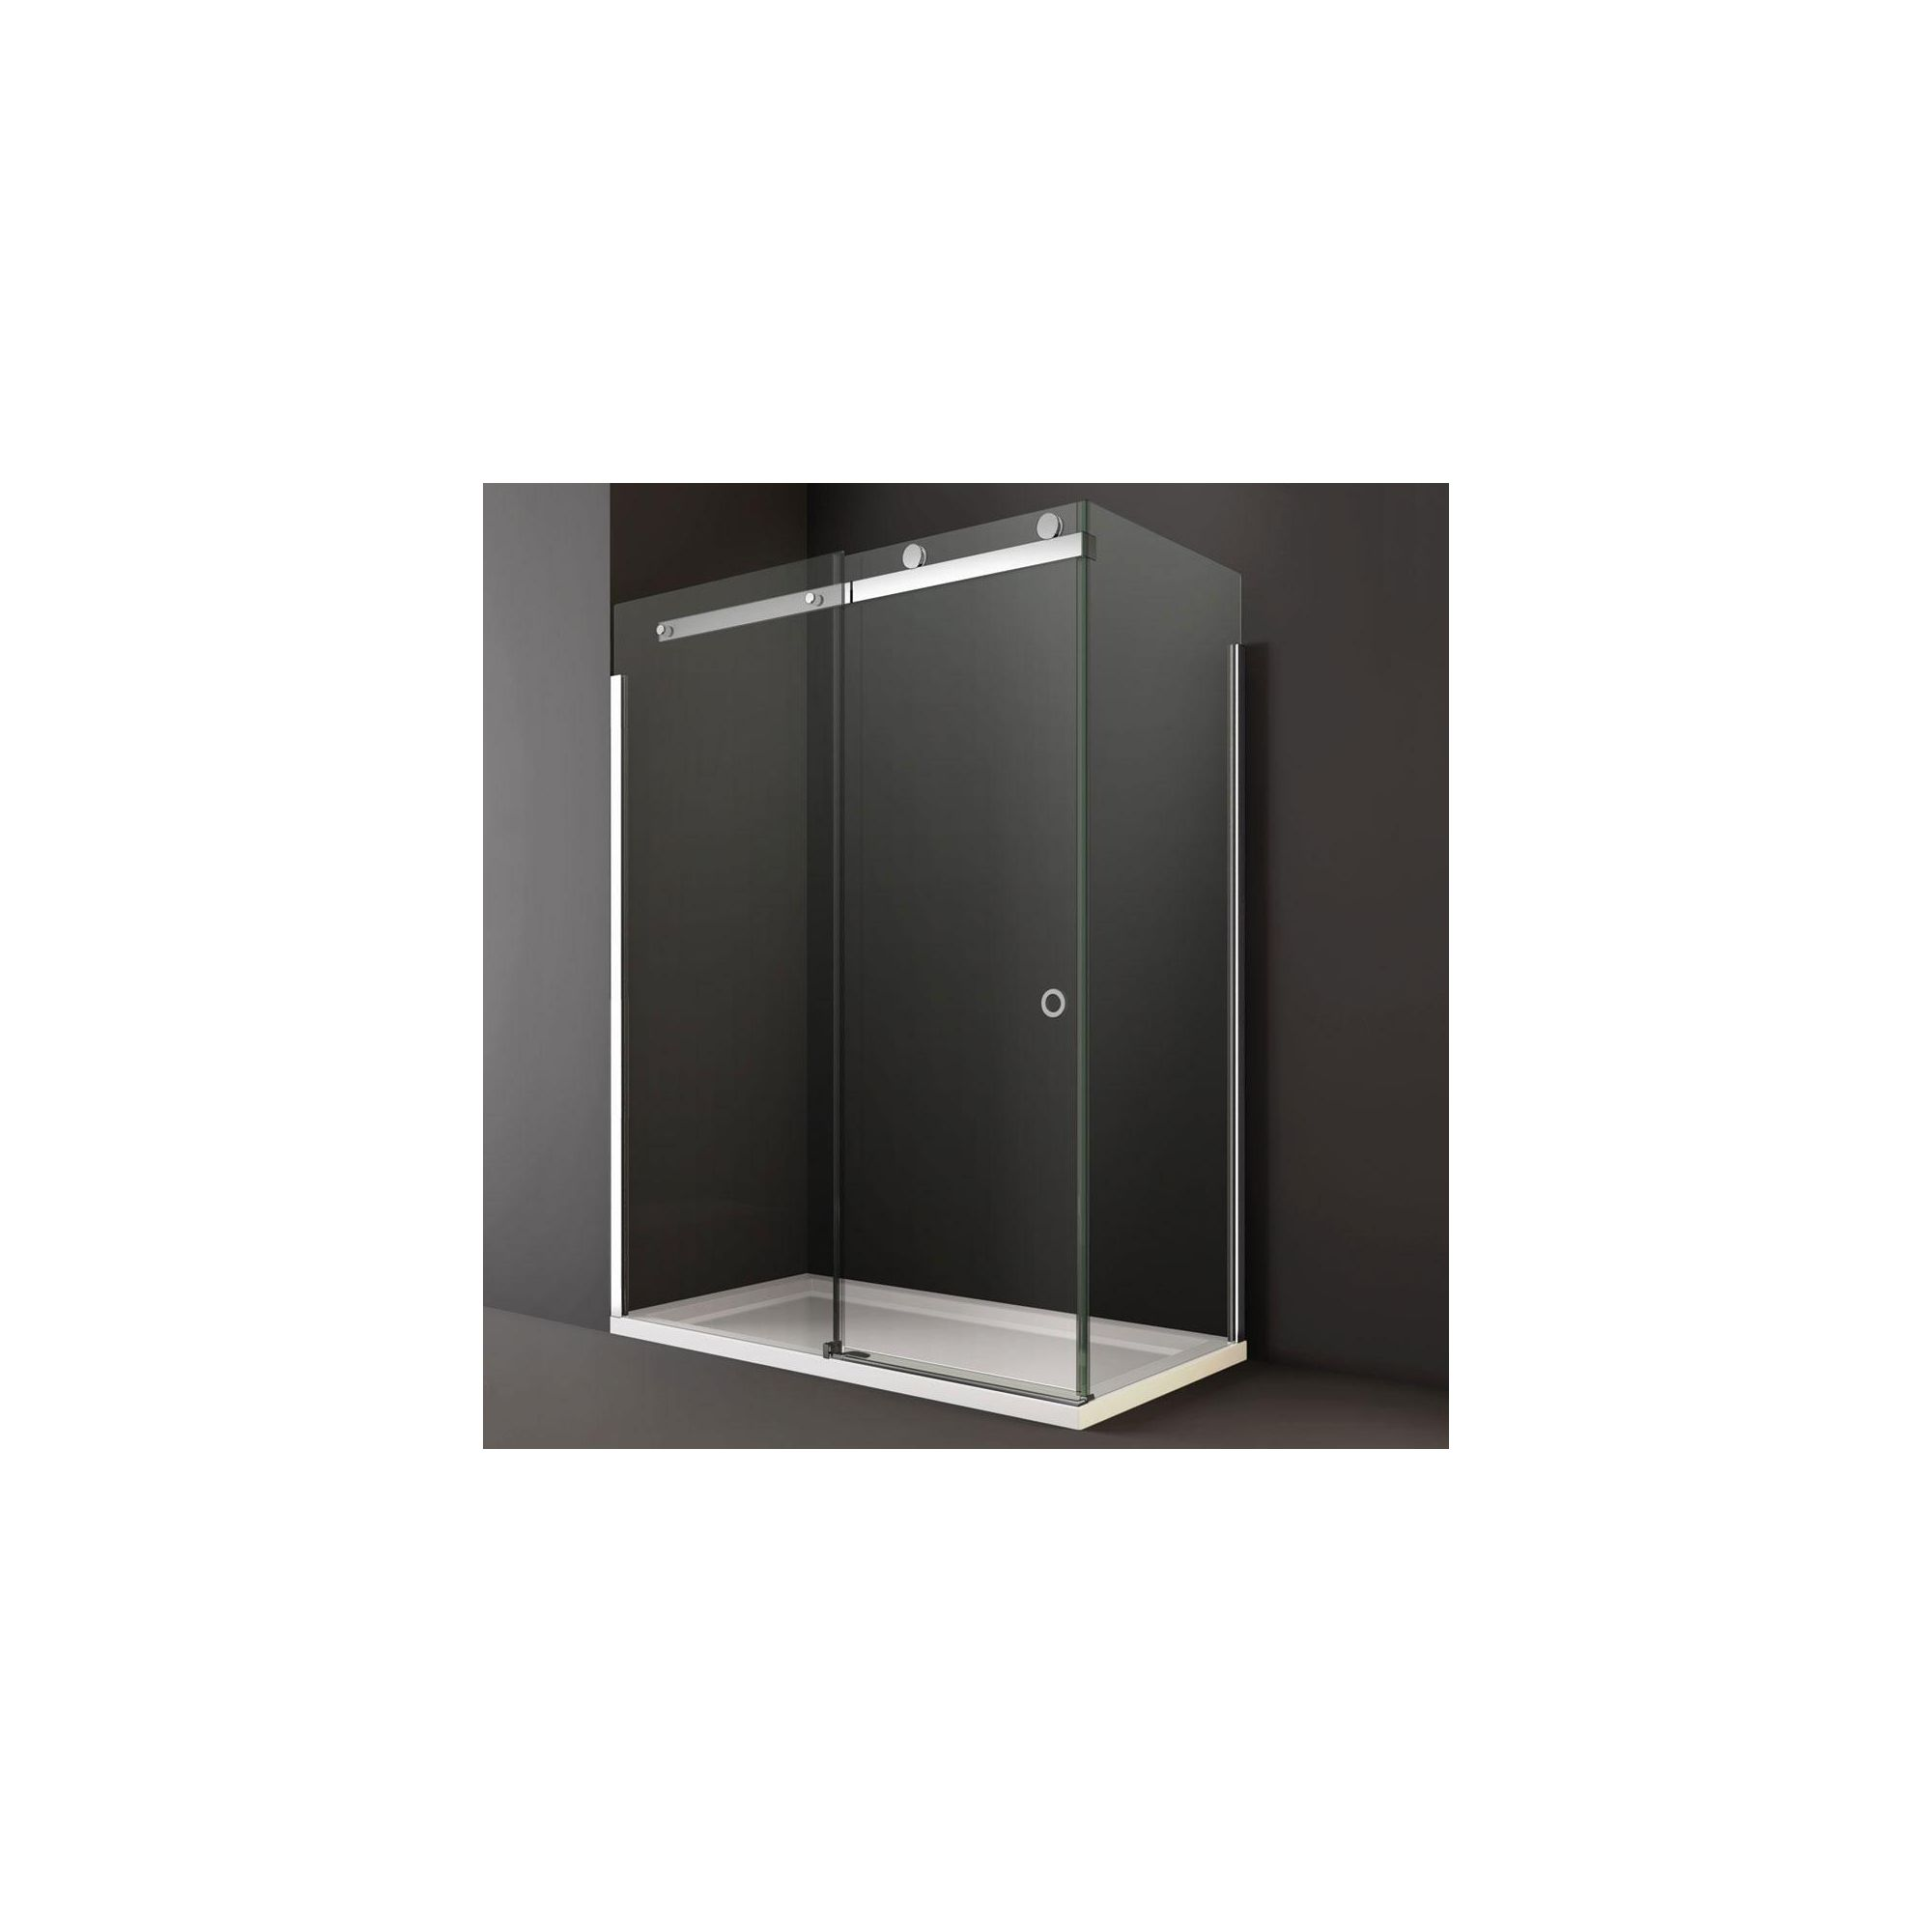 Merlyn Series 10 Sliding Shower Door, 1400mm Wide, 10mm Clear Glass, Left Handed at Tesco Direct